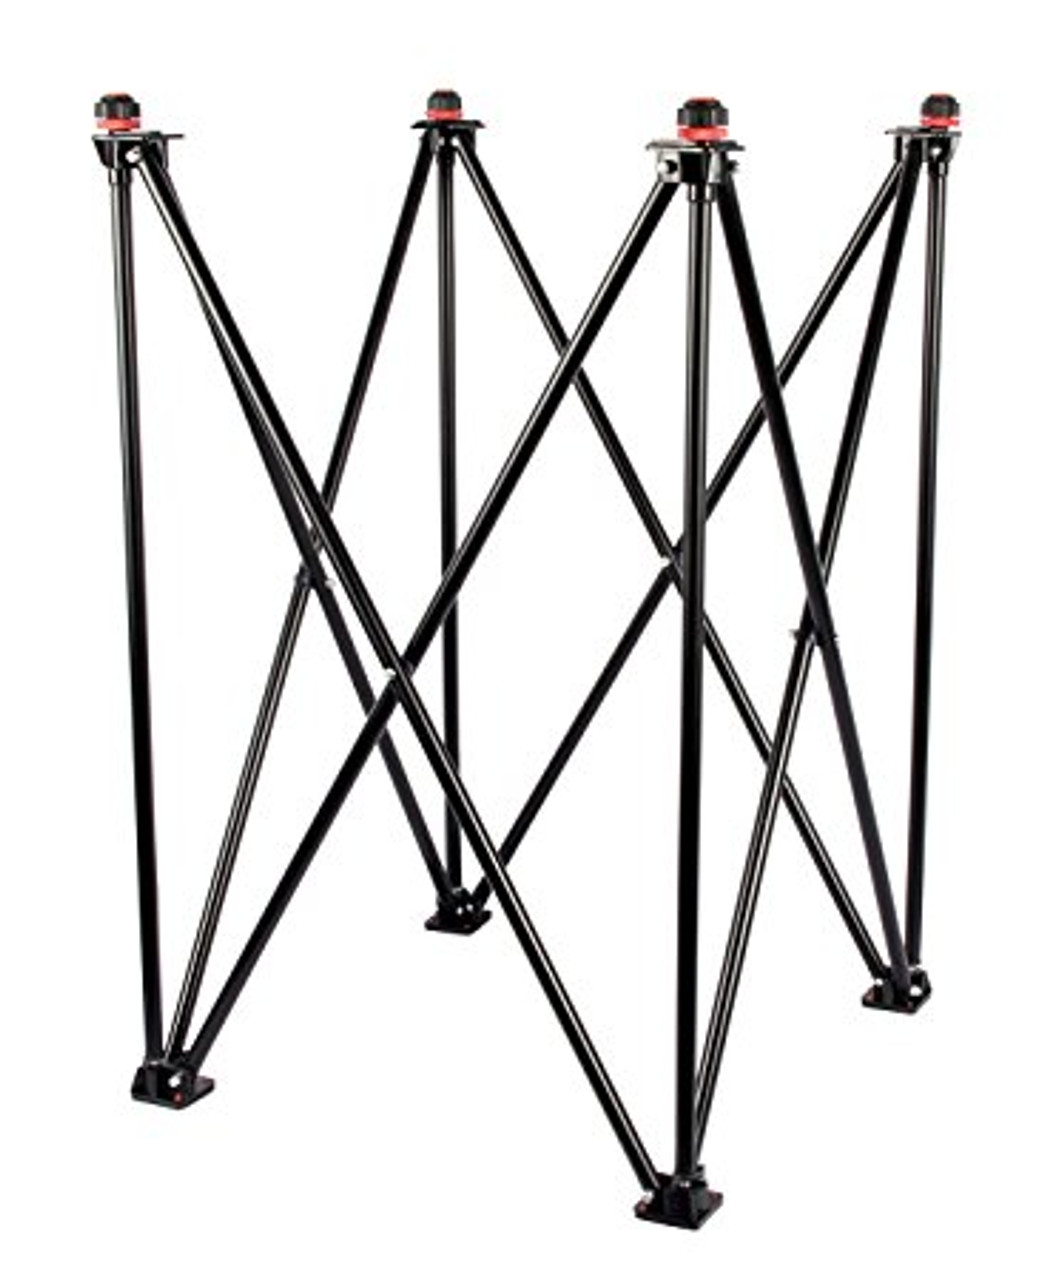 New Release ACF/ICF Regulation Approved Metal Foldaway Carrom Board Stand